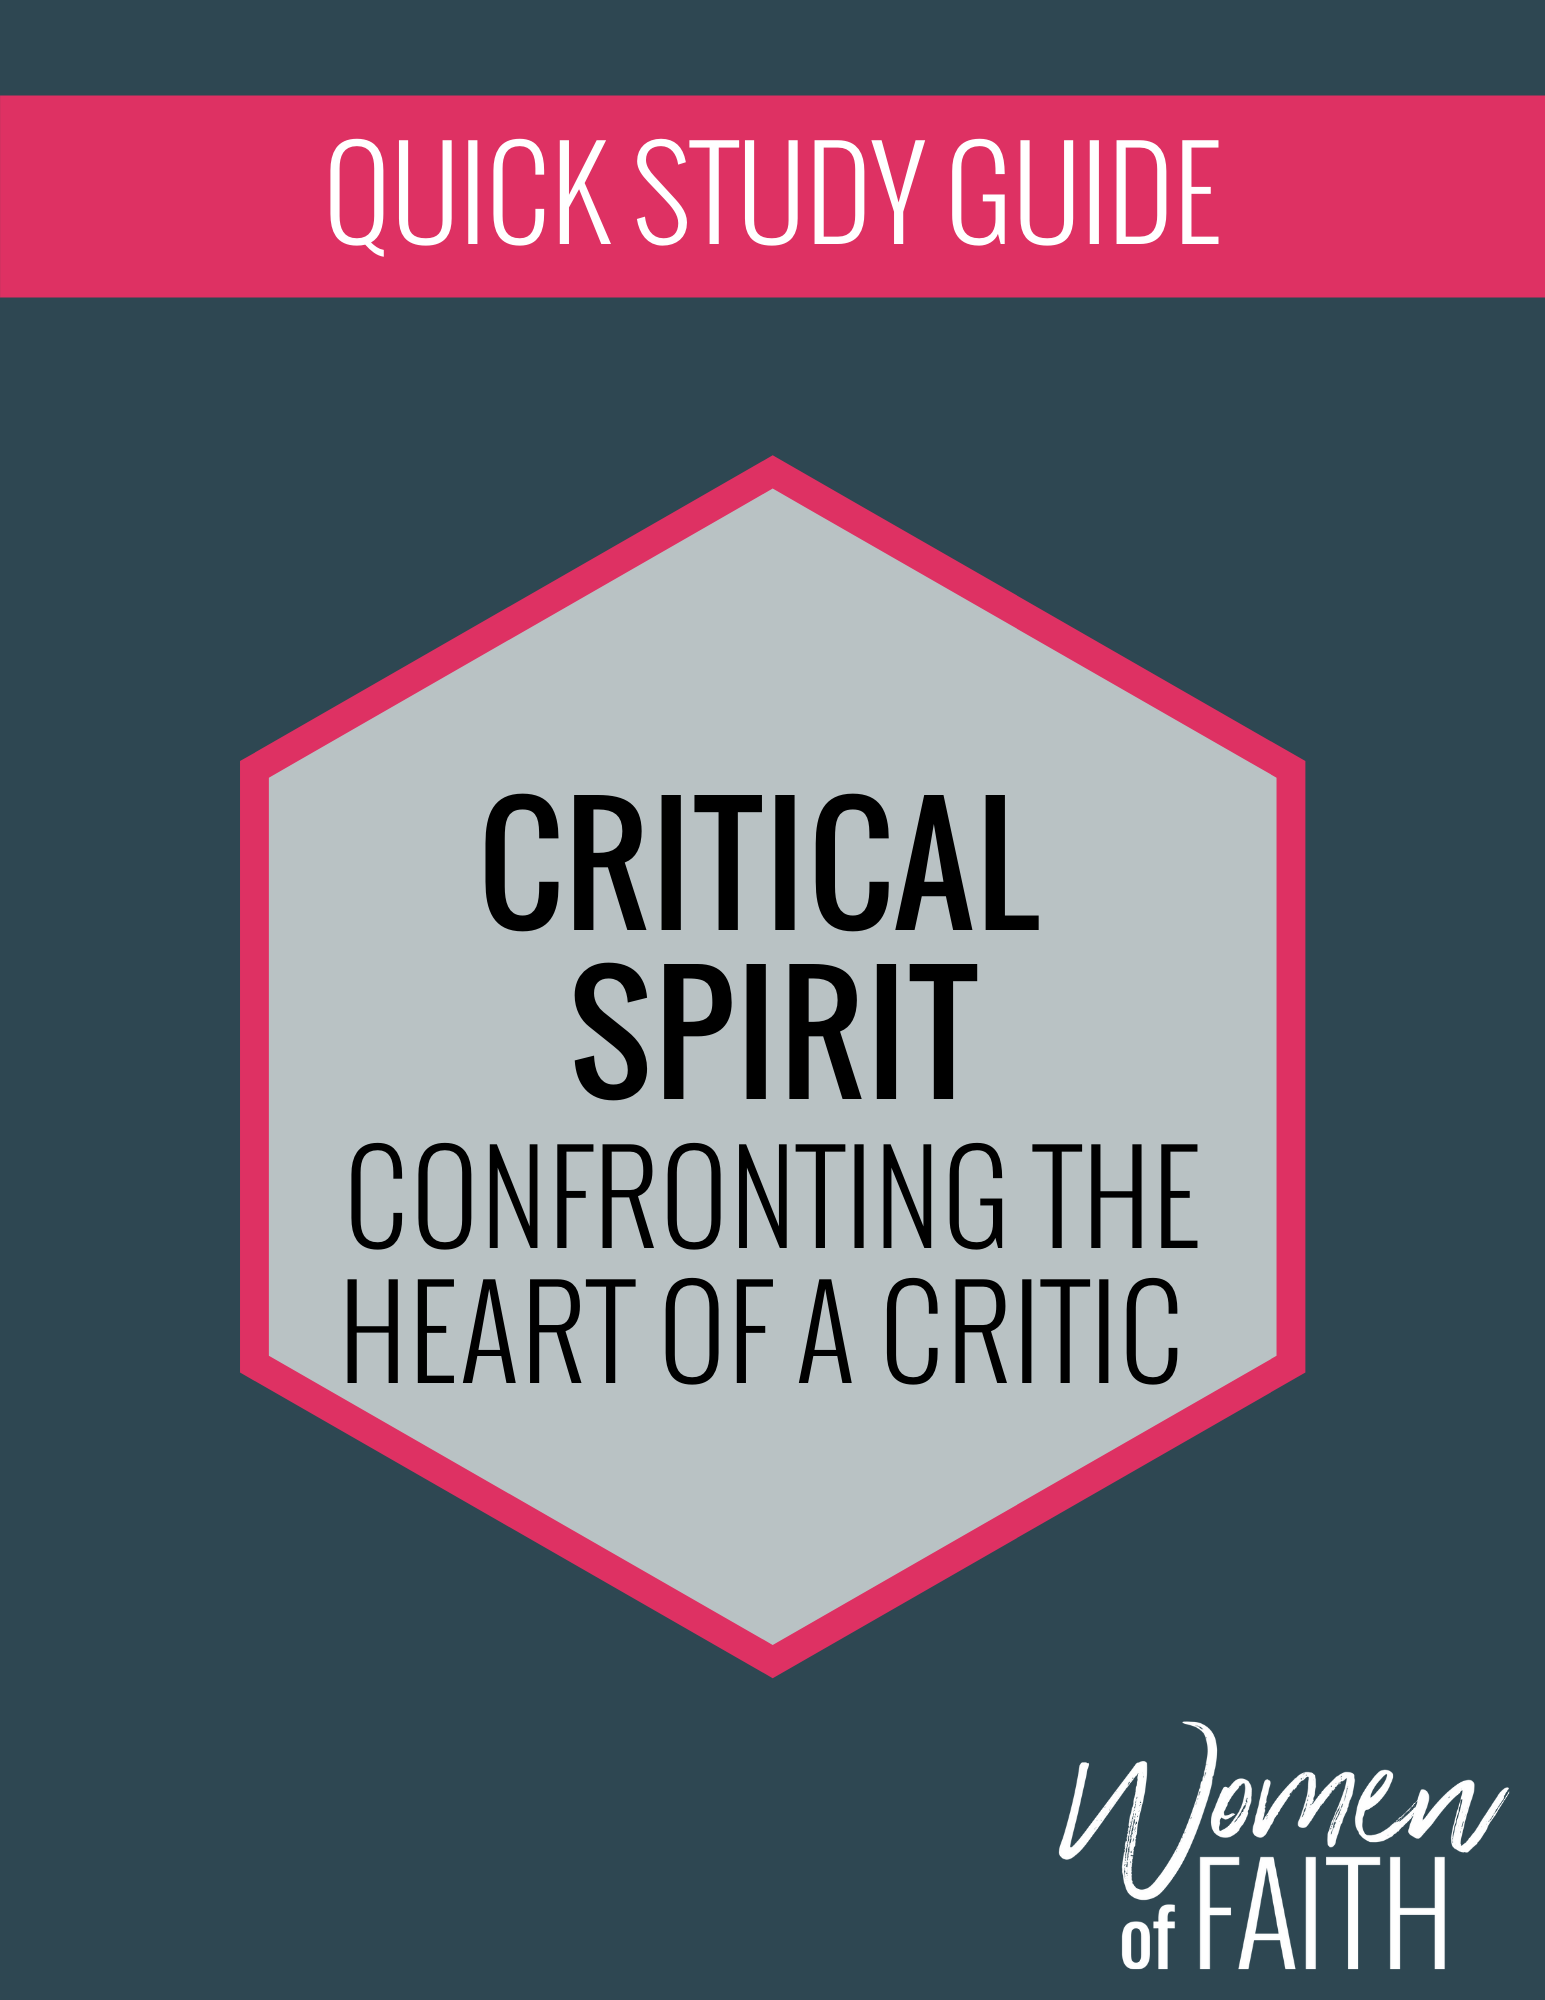 CRITICAL SPIRIT Quick Study Guide (E-GUIDE)